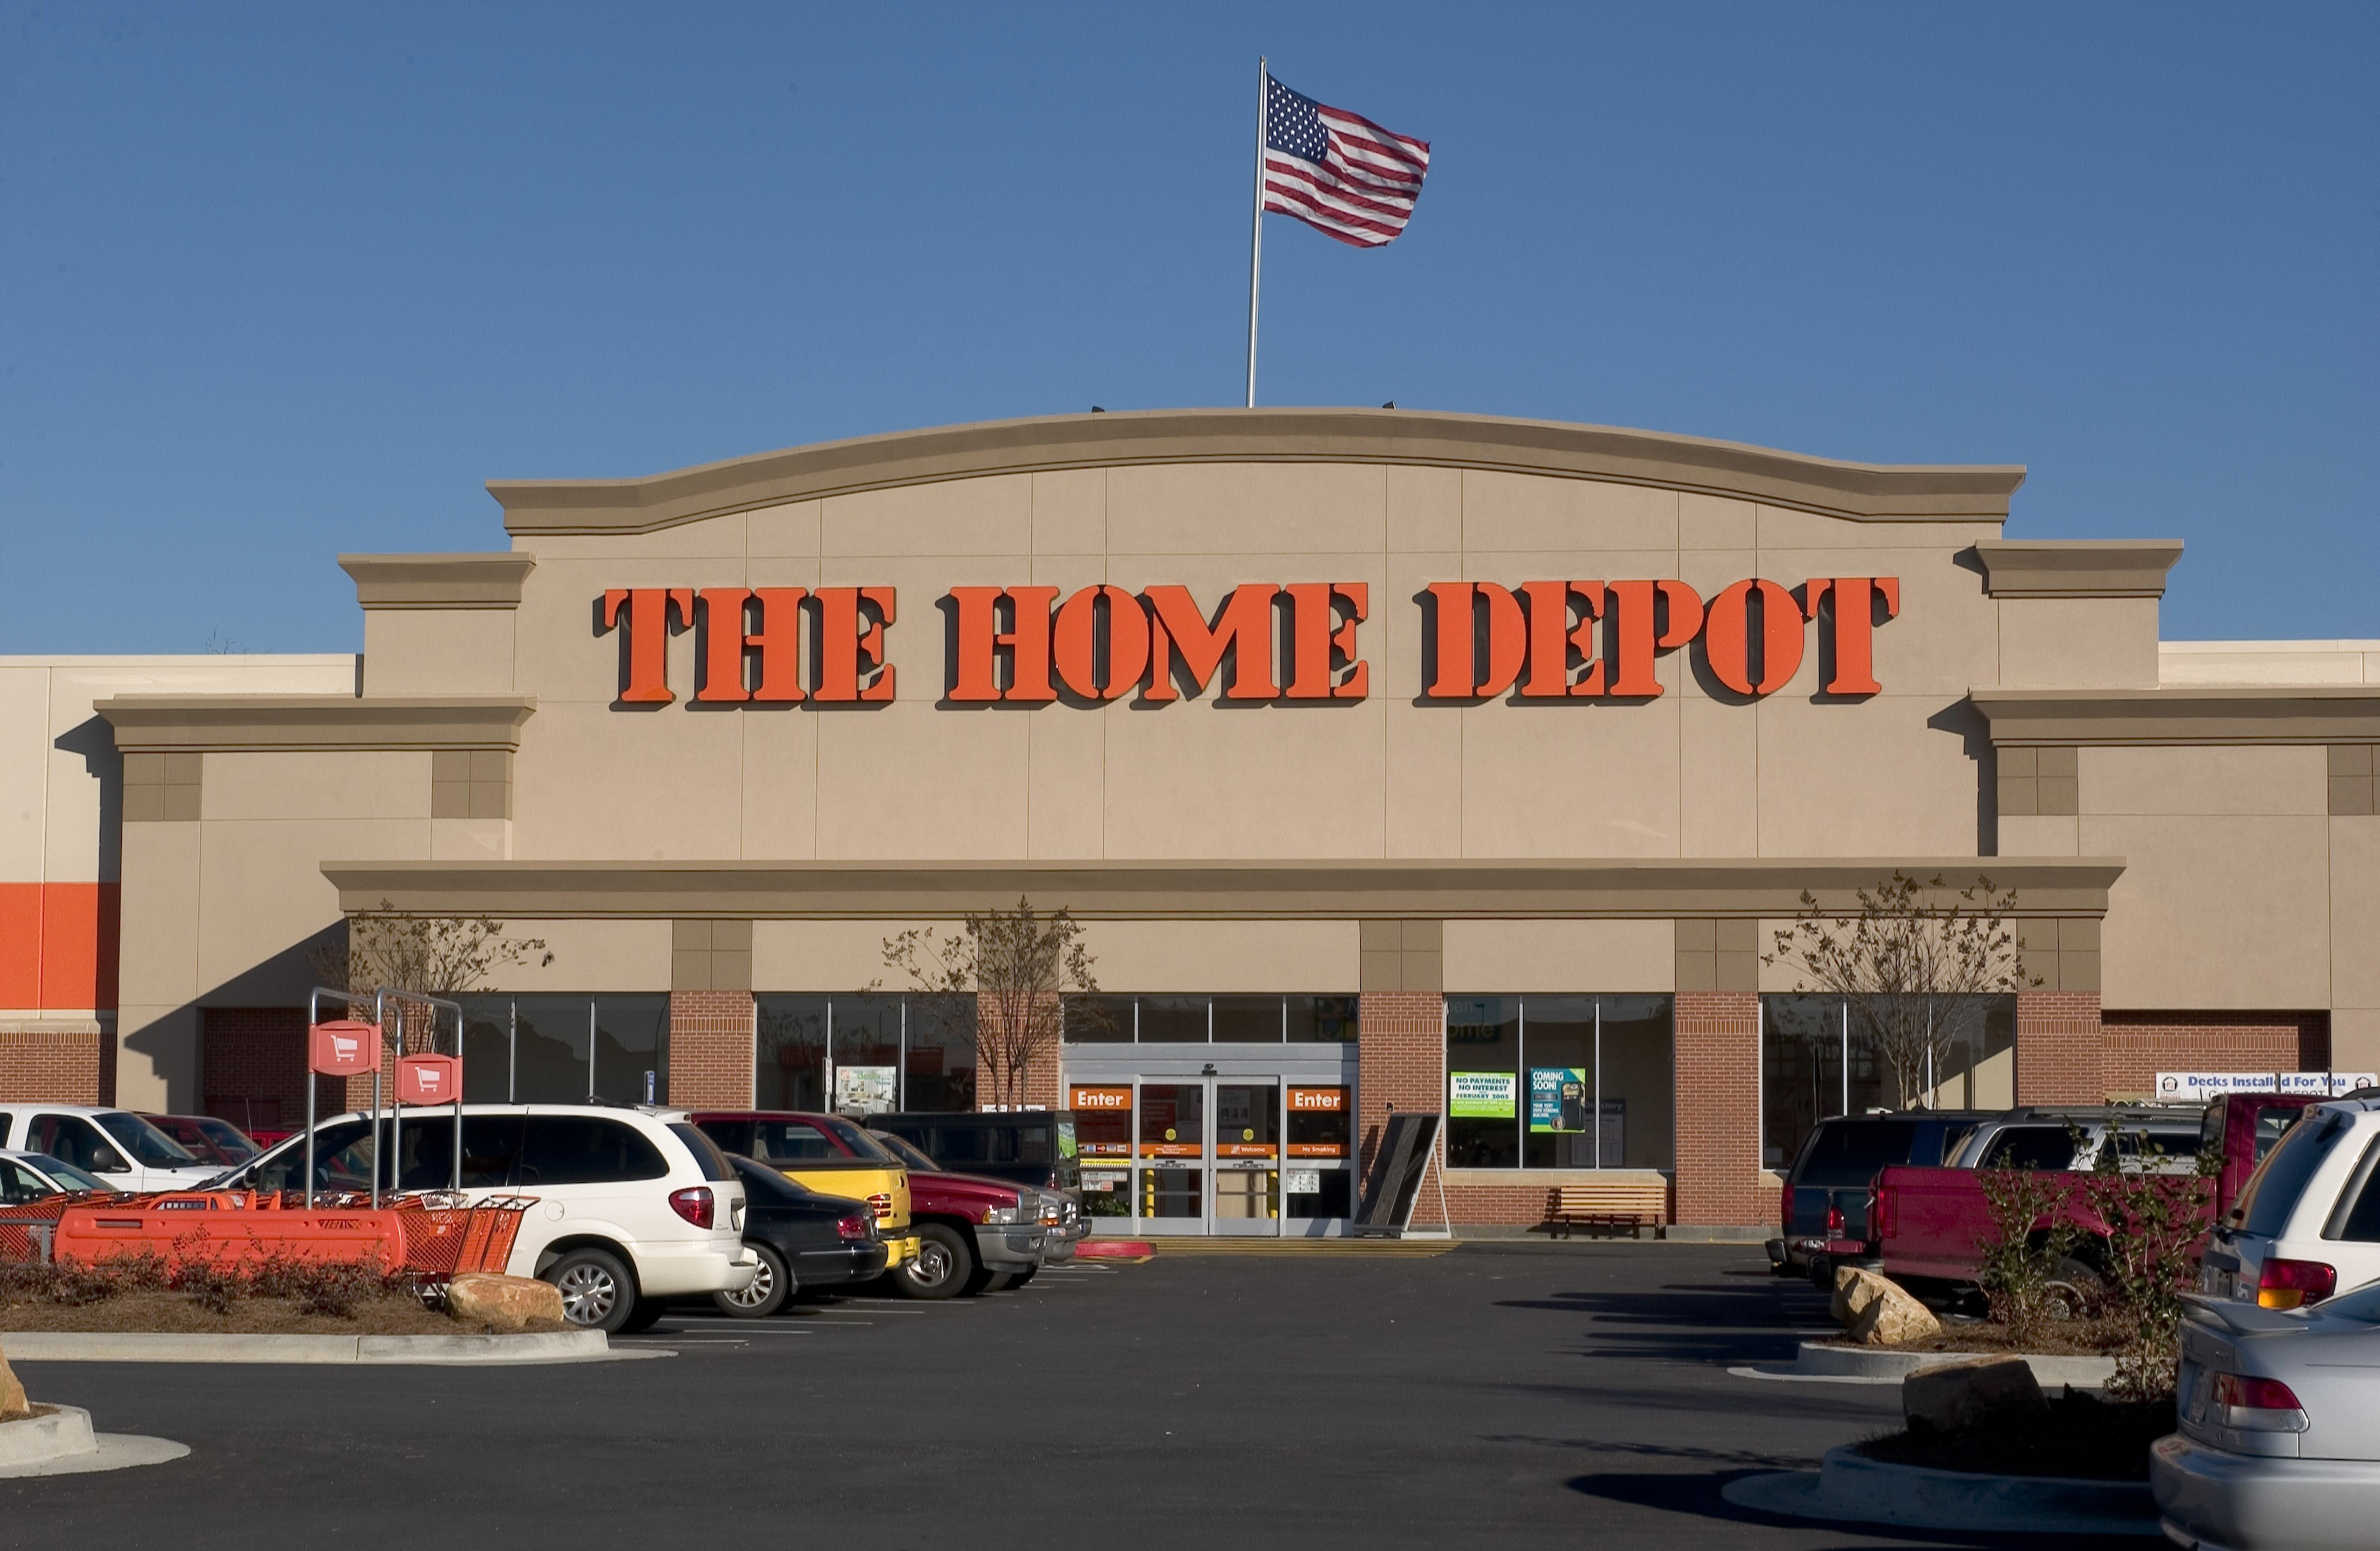 Home Depot Shares Fall For A Second Straight Session On Wednesday Company Announces Safety Measures Additional Bonuses For Associates